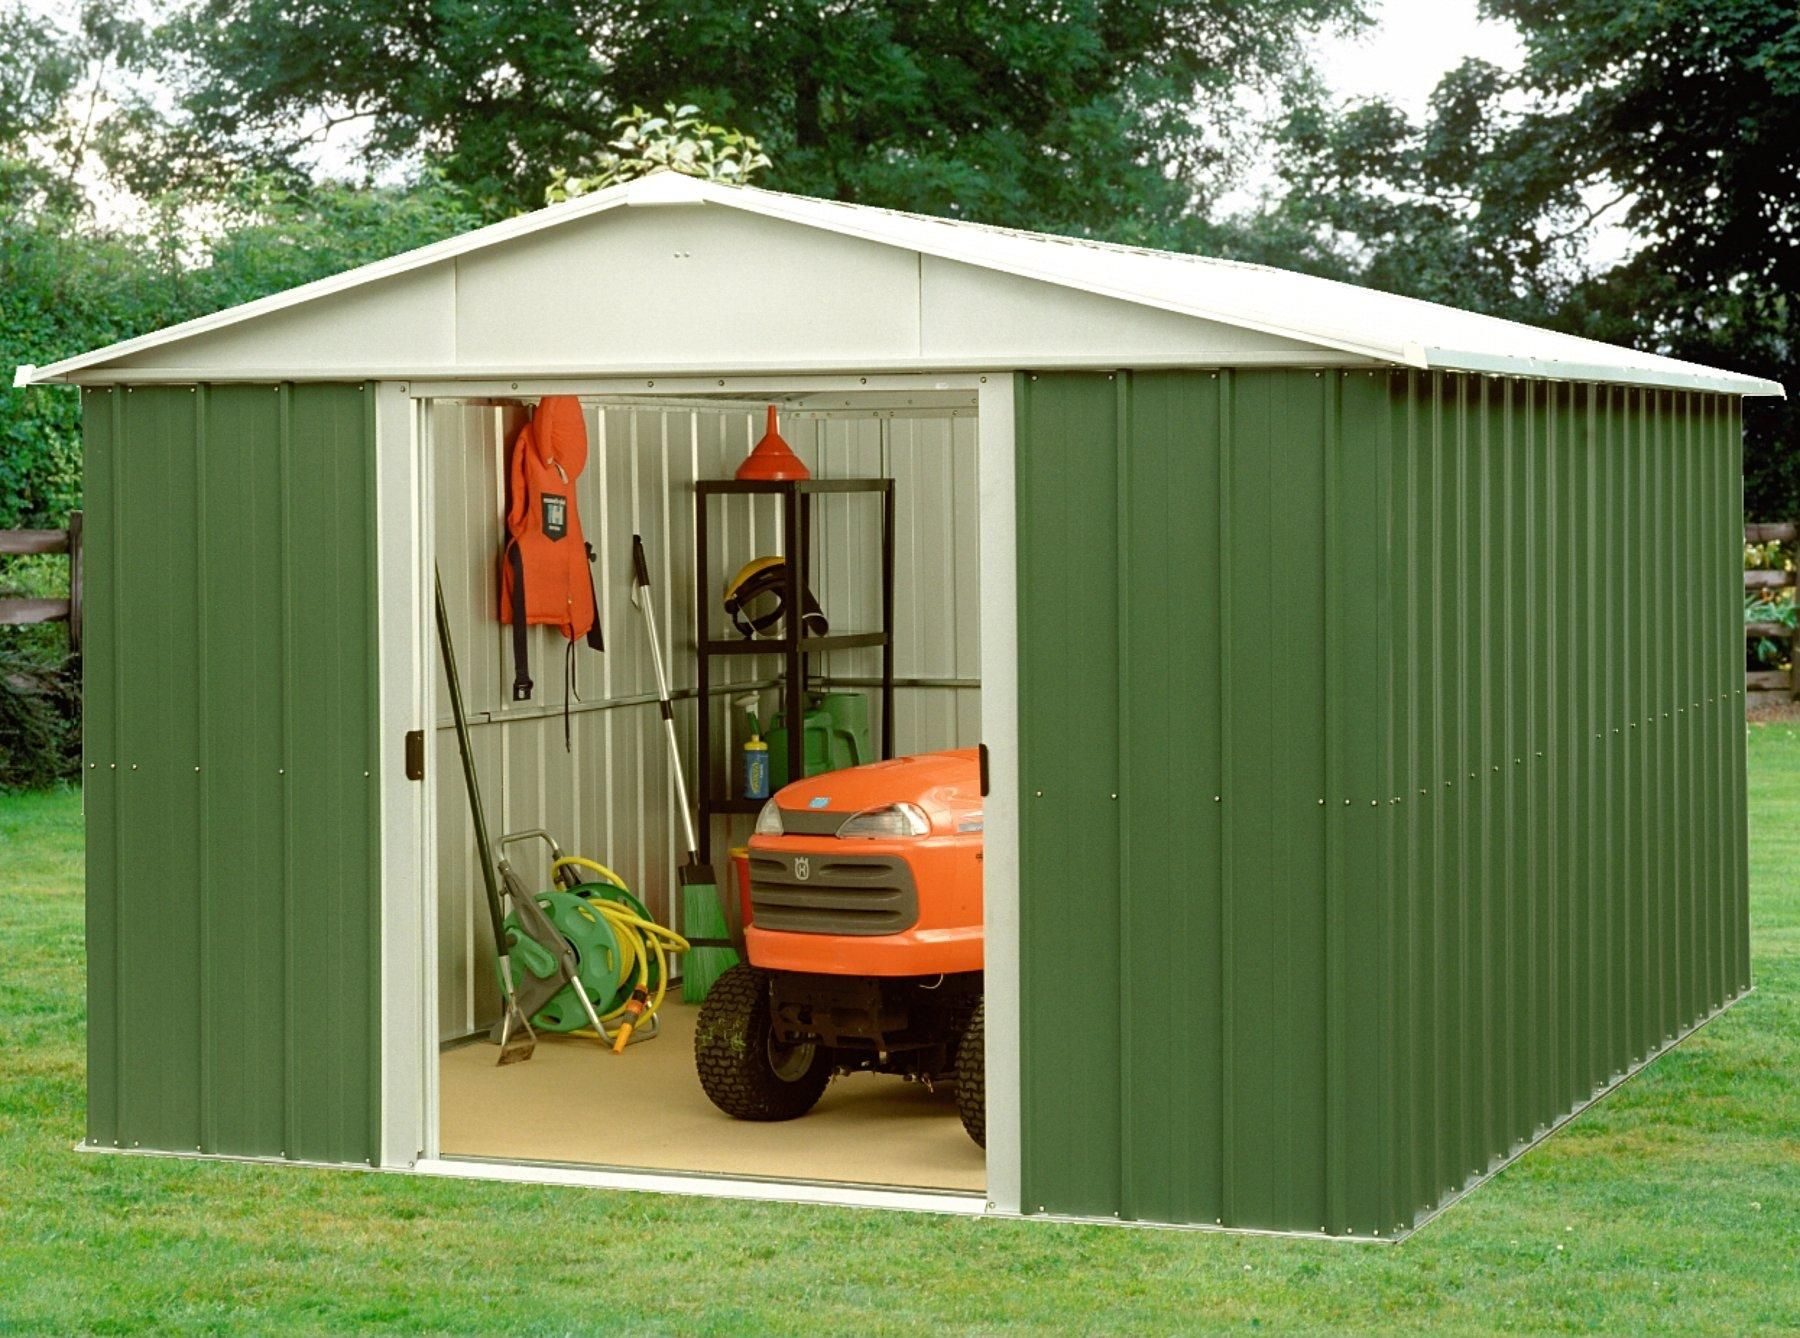 Yardmaster 9 4 X 9 4 Ft Apex Metal Roof Shed In Shed Apex Shed Metal Roof